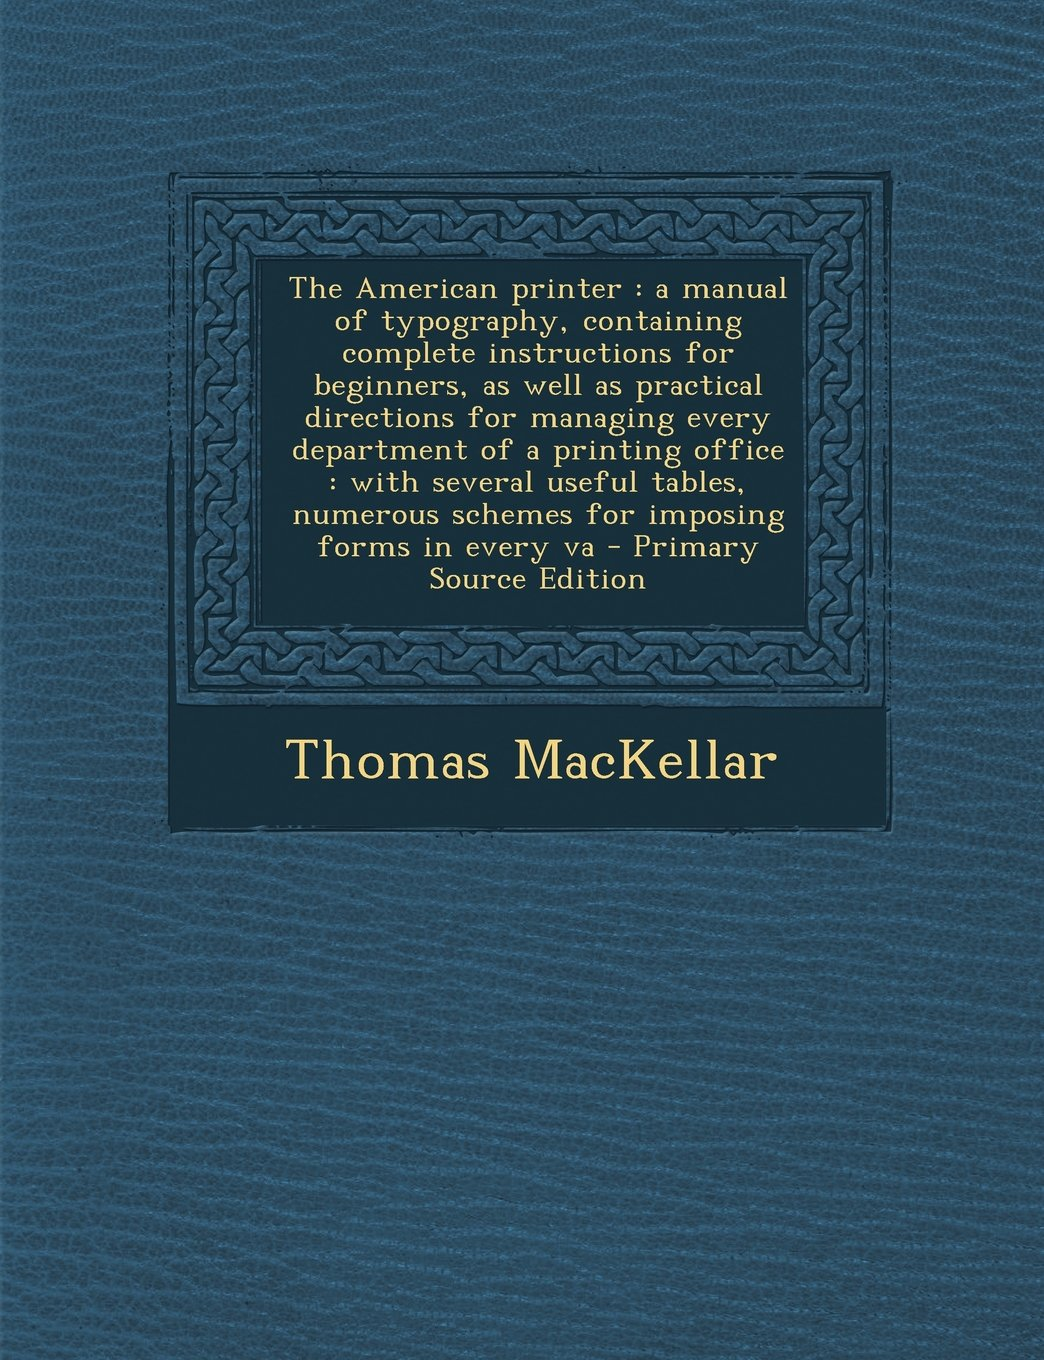 Download The American Printer: A Manual of Typography, Containing Complete Instructions for Beginners, as Well as Practical Directions for Managing E PDF